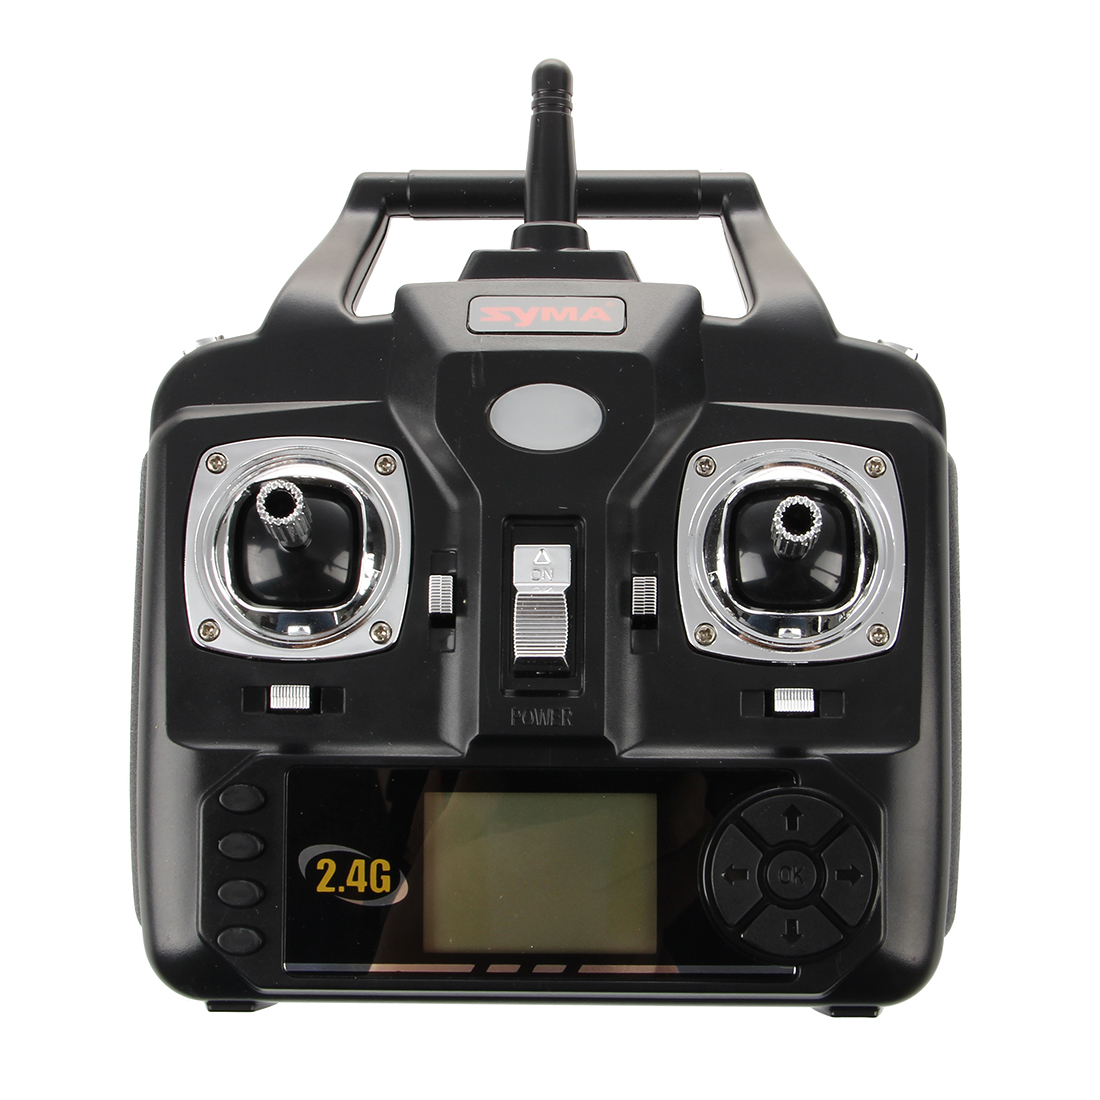 SCLS New Syma Transmitter font b Remote b font Control for SYMA X5 and X5C Quadcopter